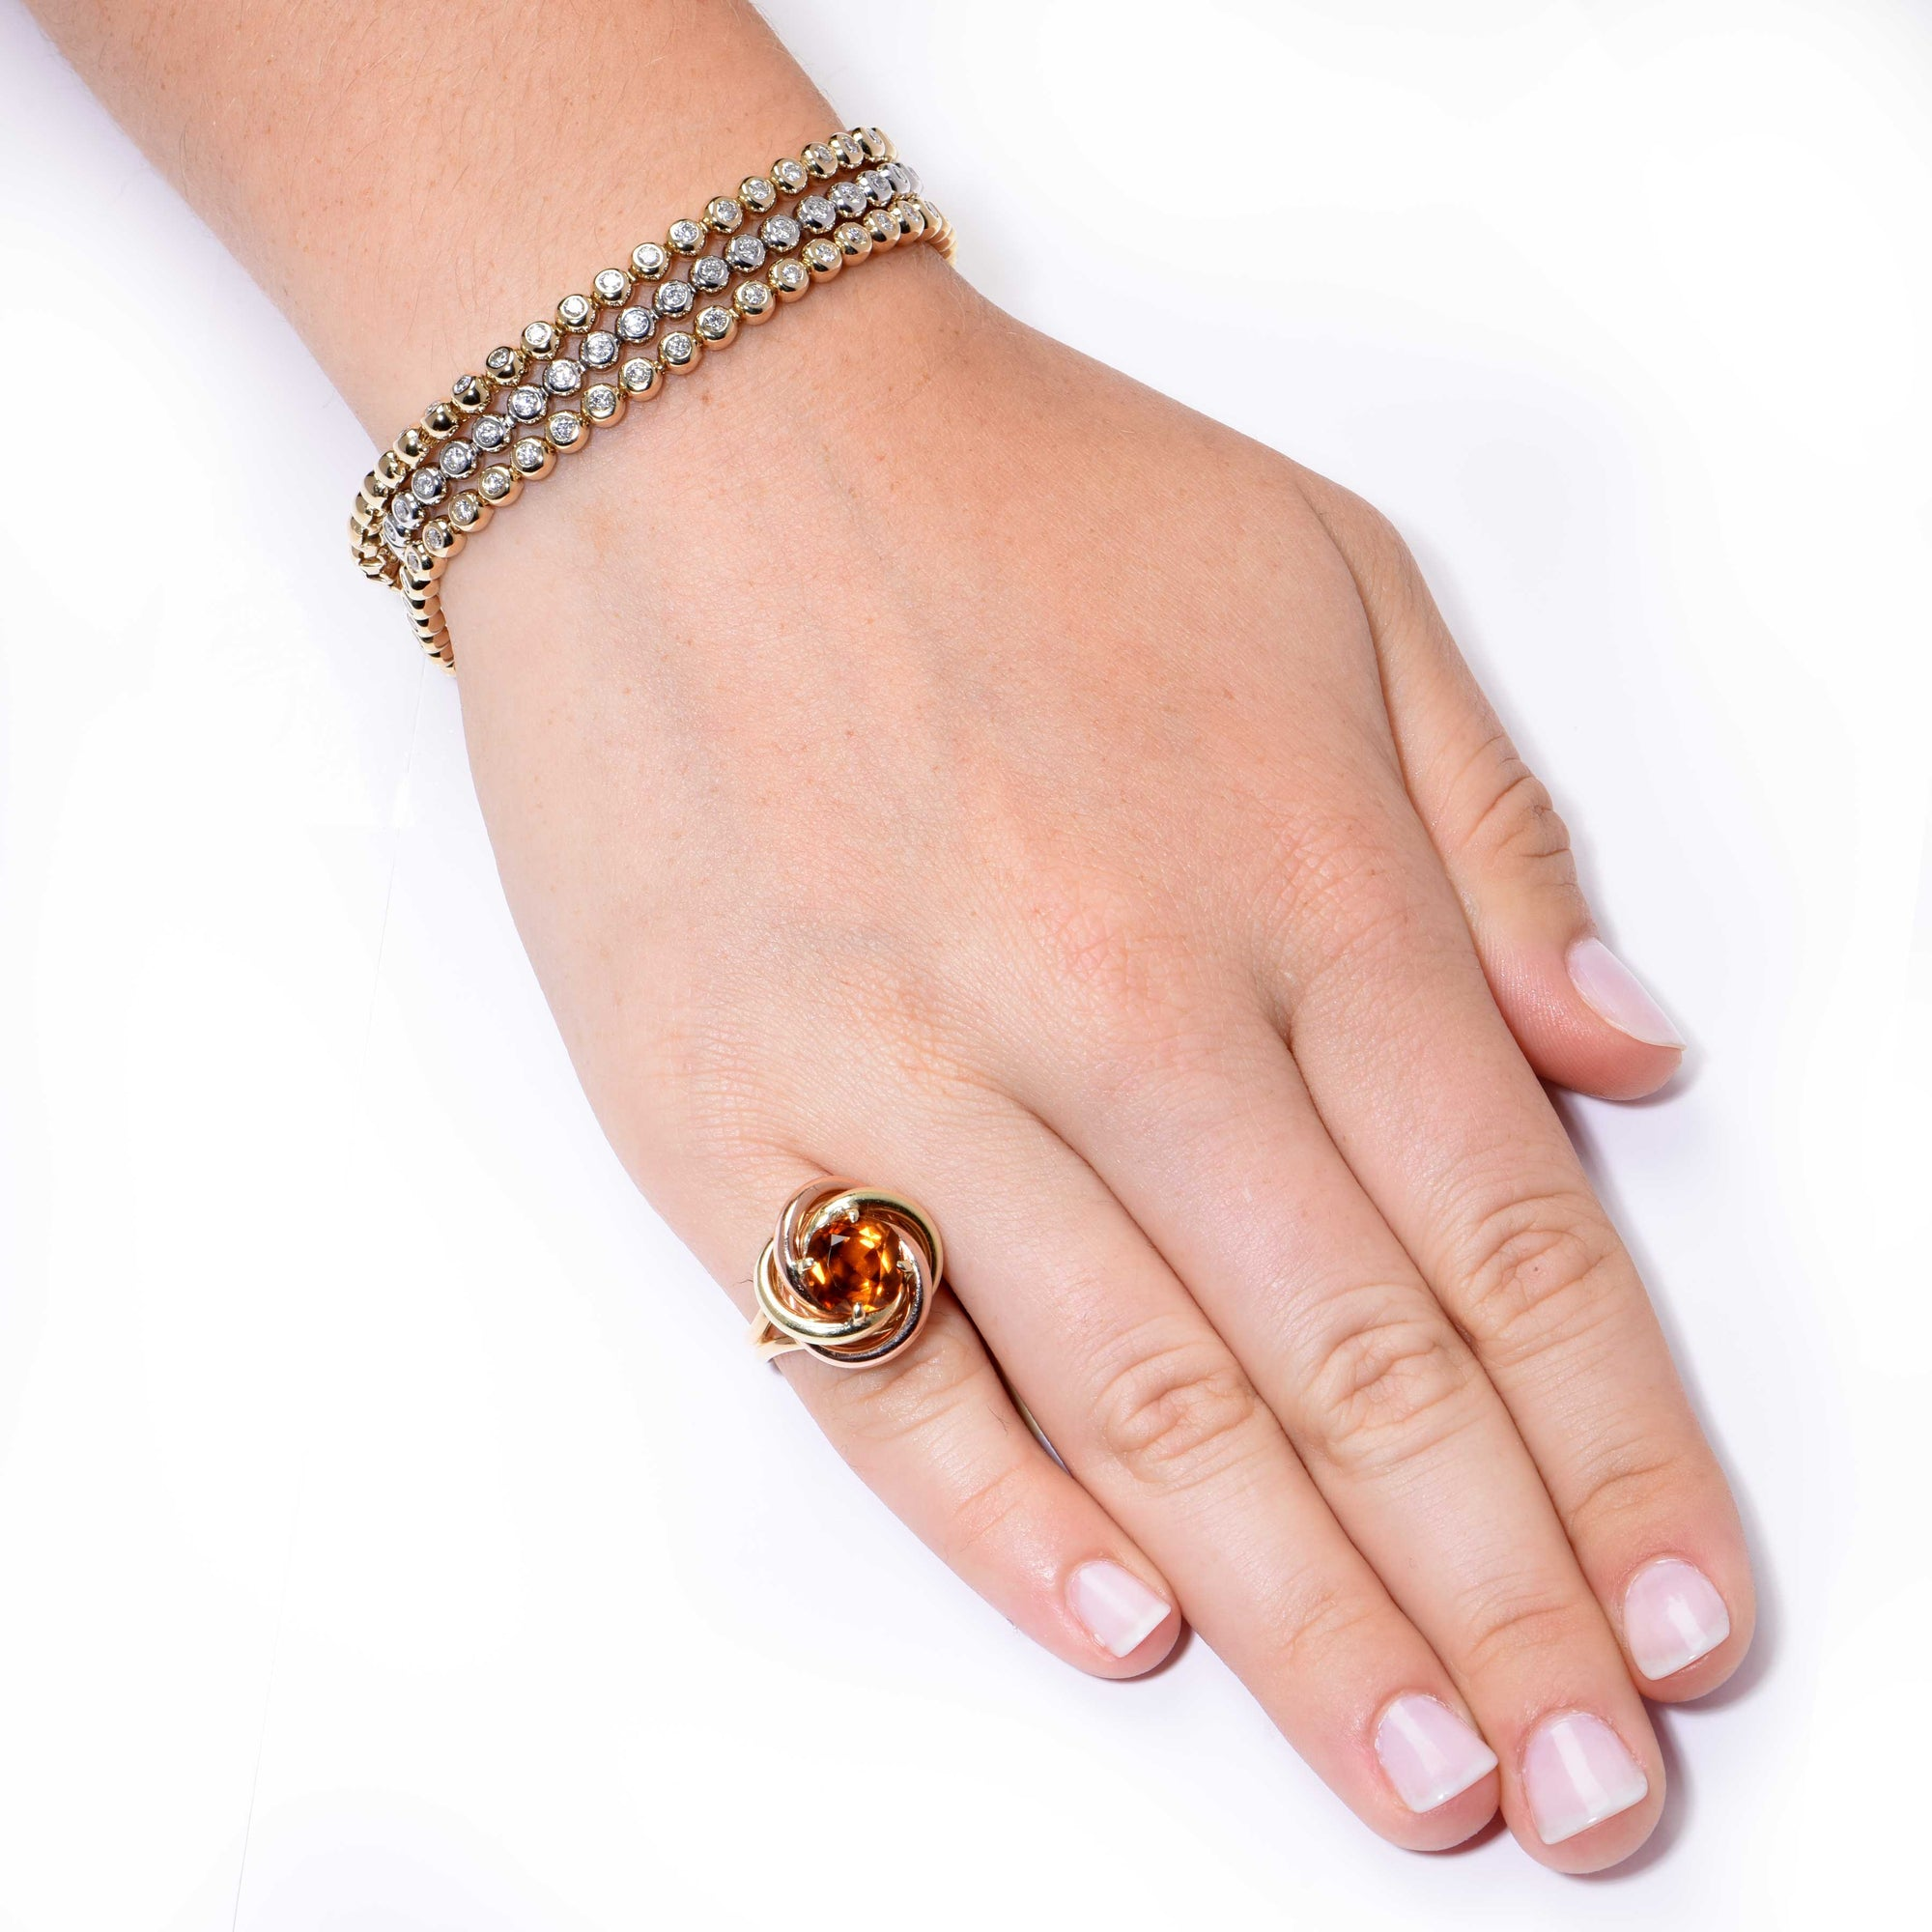 1940s Cartier Retro 2 75 Carat Citrine Love Knot Gold Ring Regent Jewelers Miami And Coral Gables